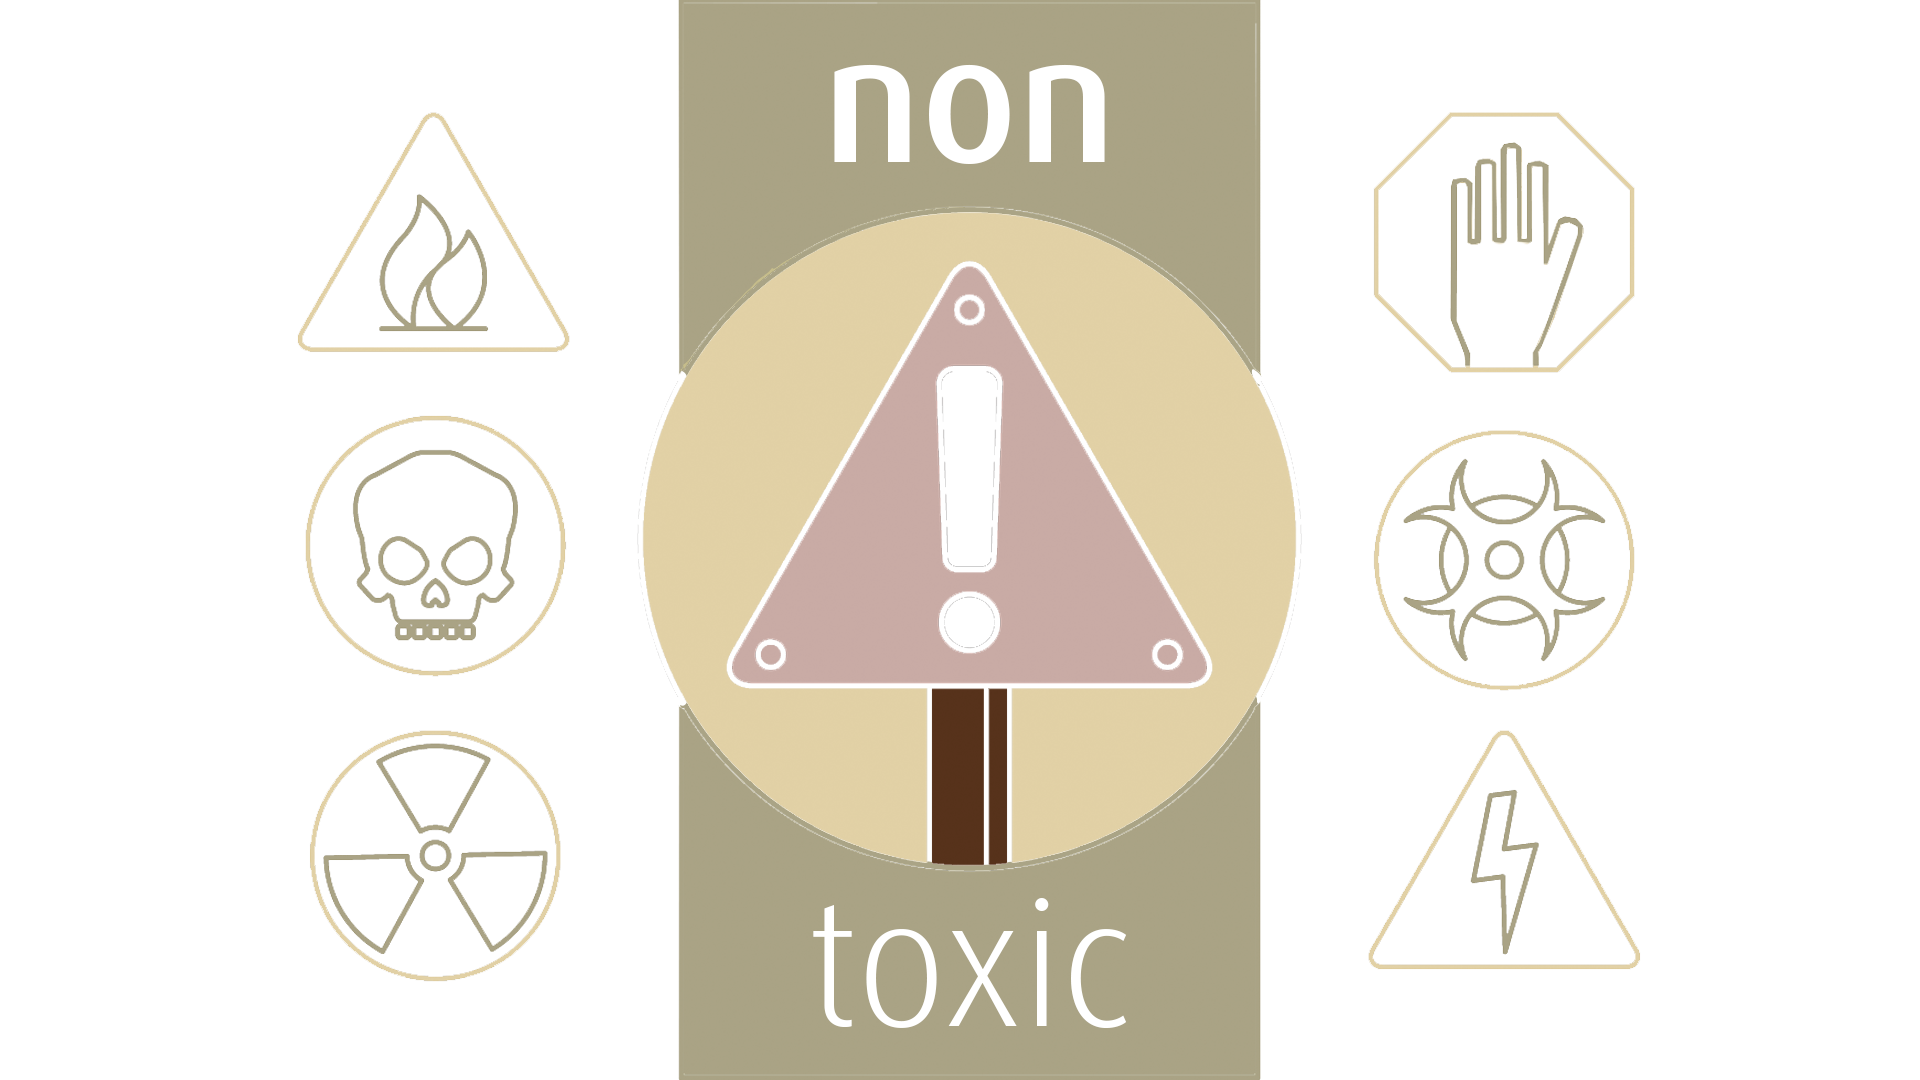 Non toxic salon drawing with in-salon risks